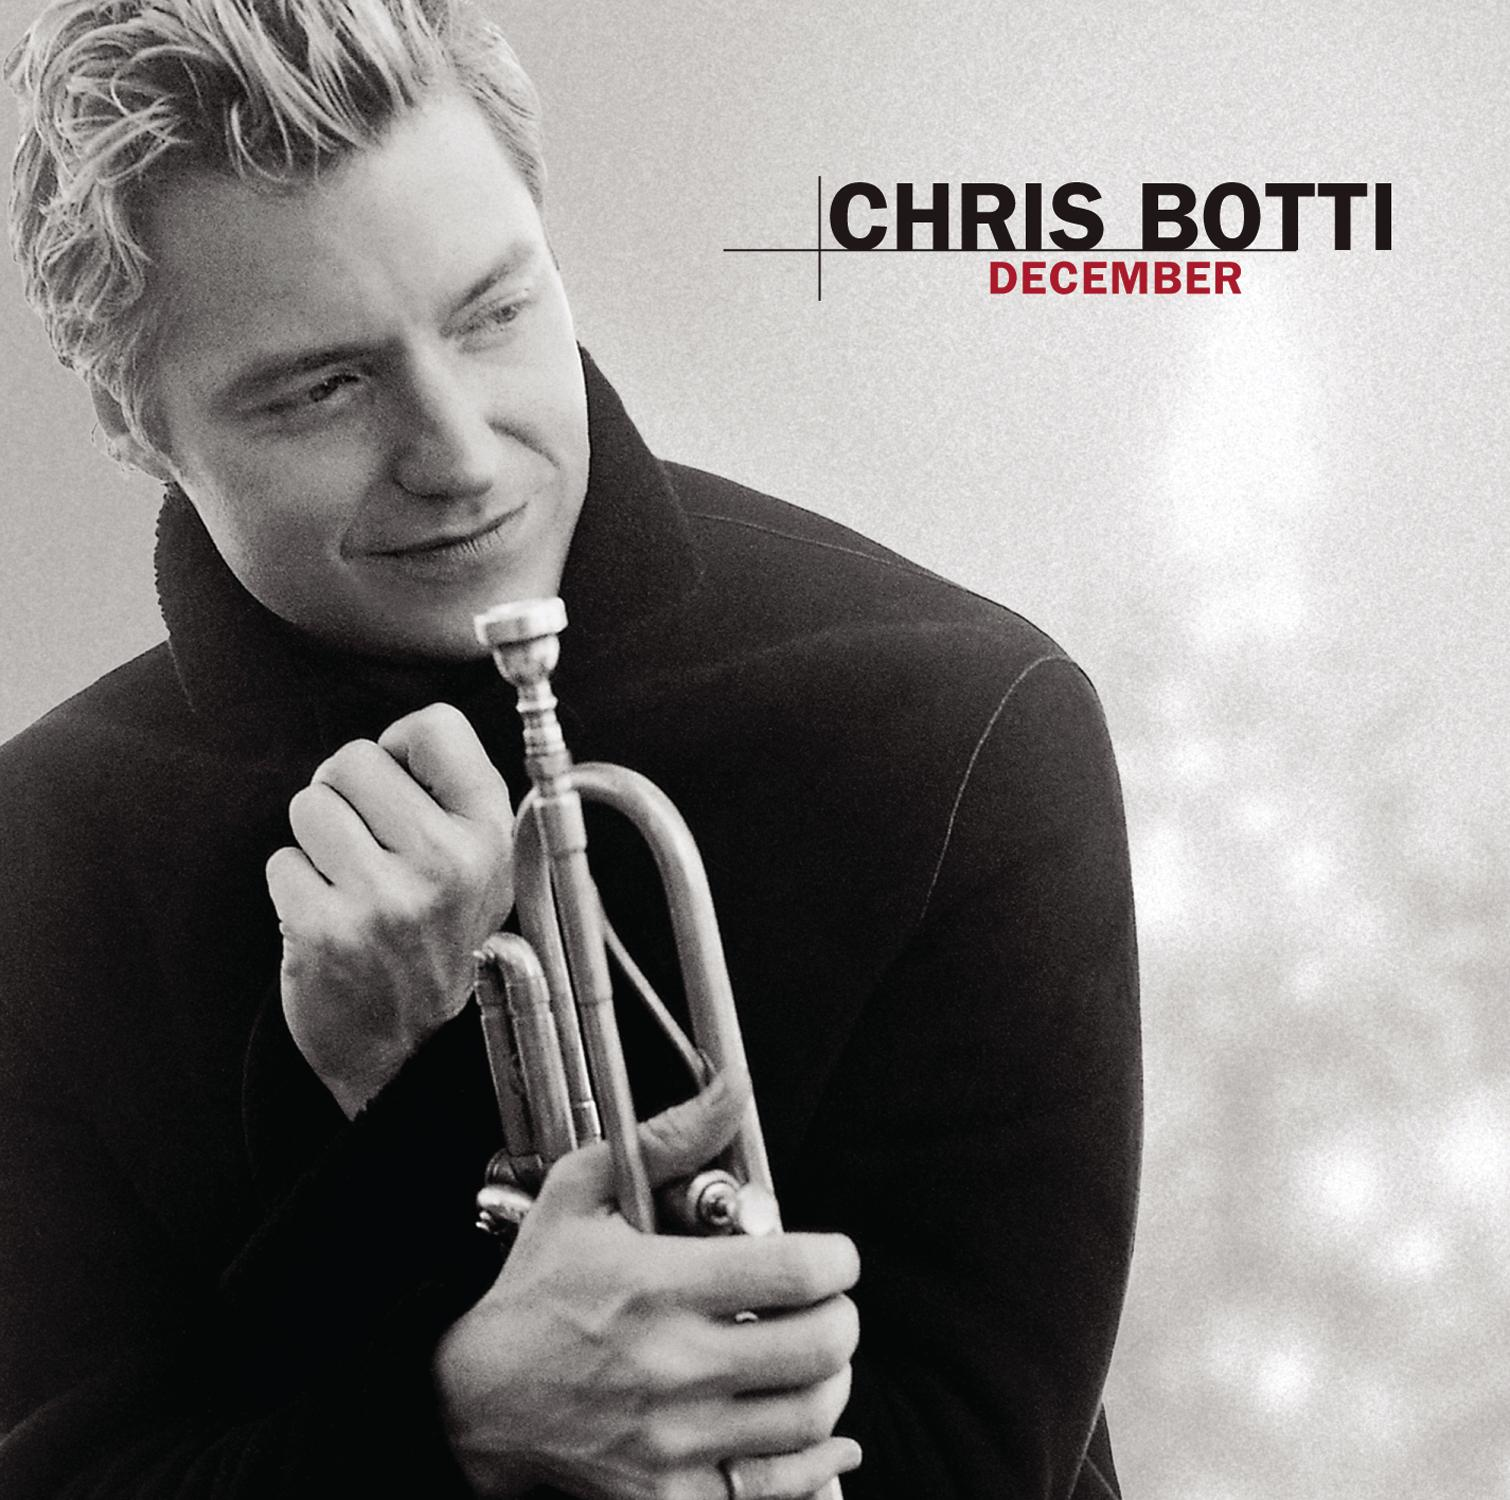 CHRIS BOTTI: DECEMBER